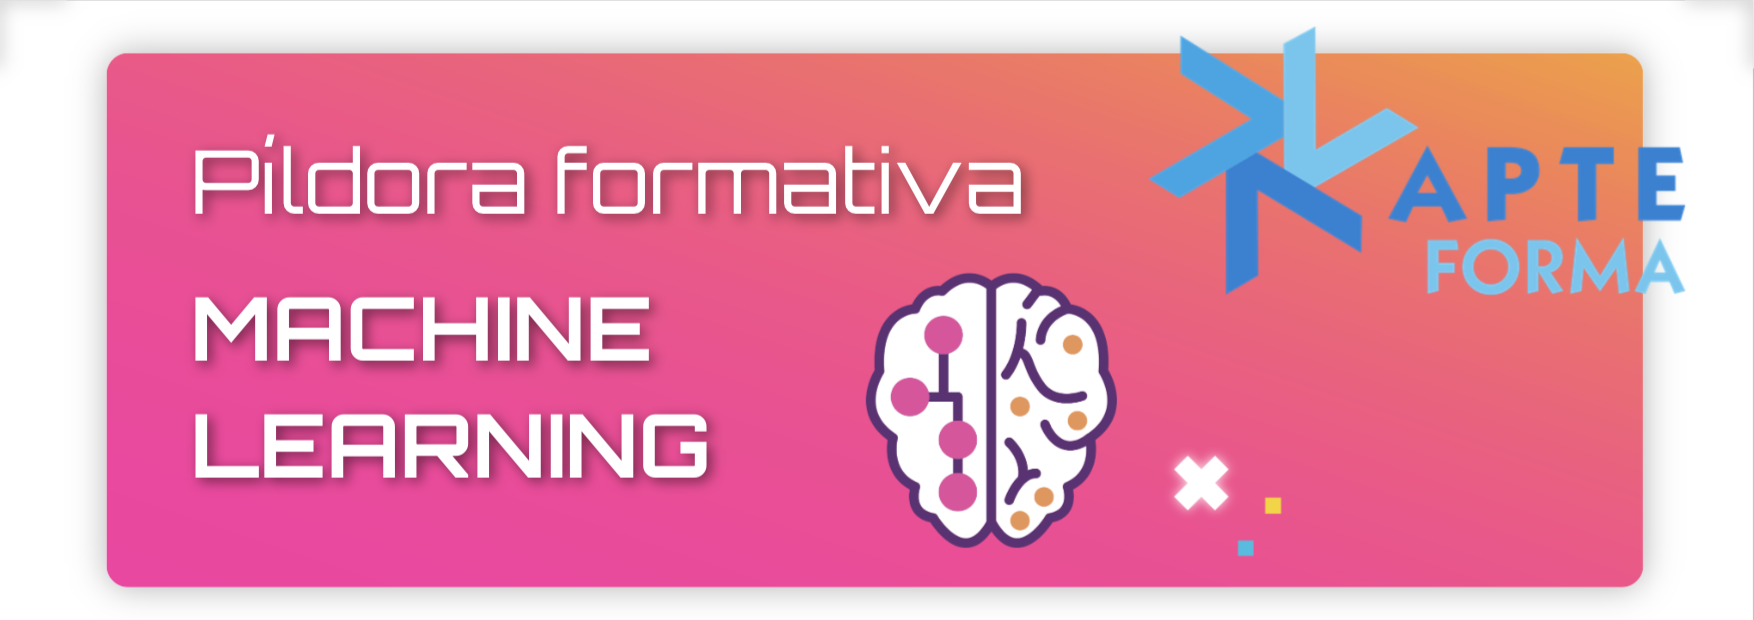 Infografía Píldora formativa Machine Learning